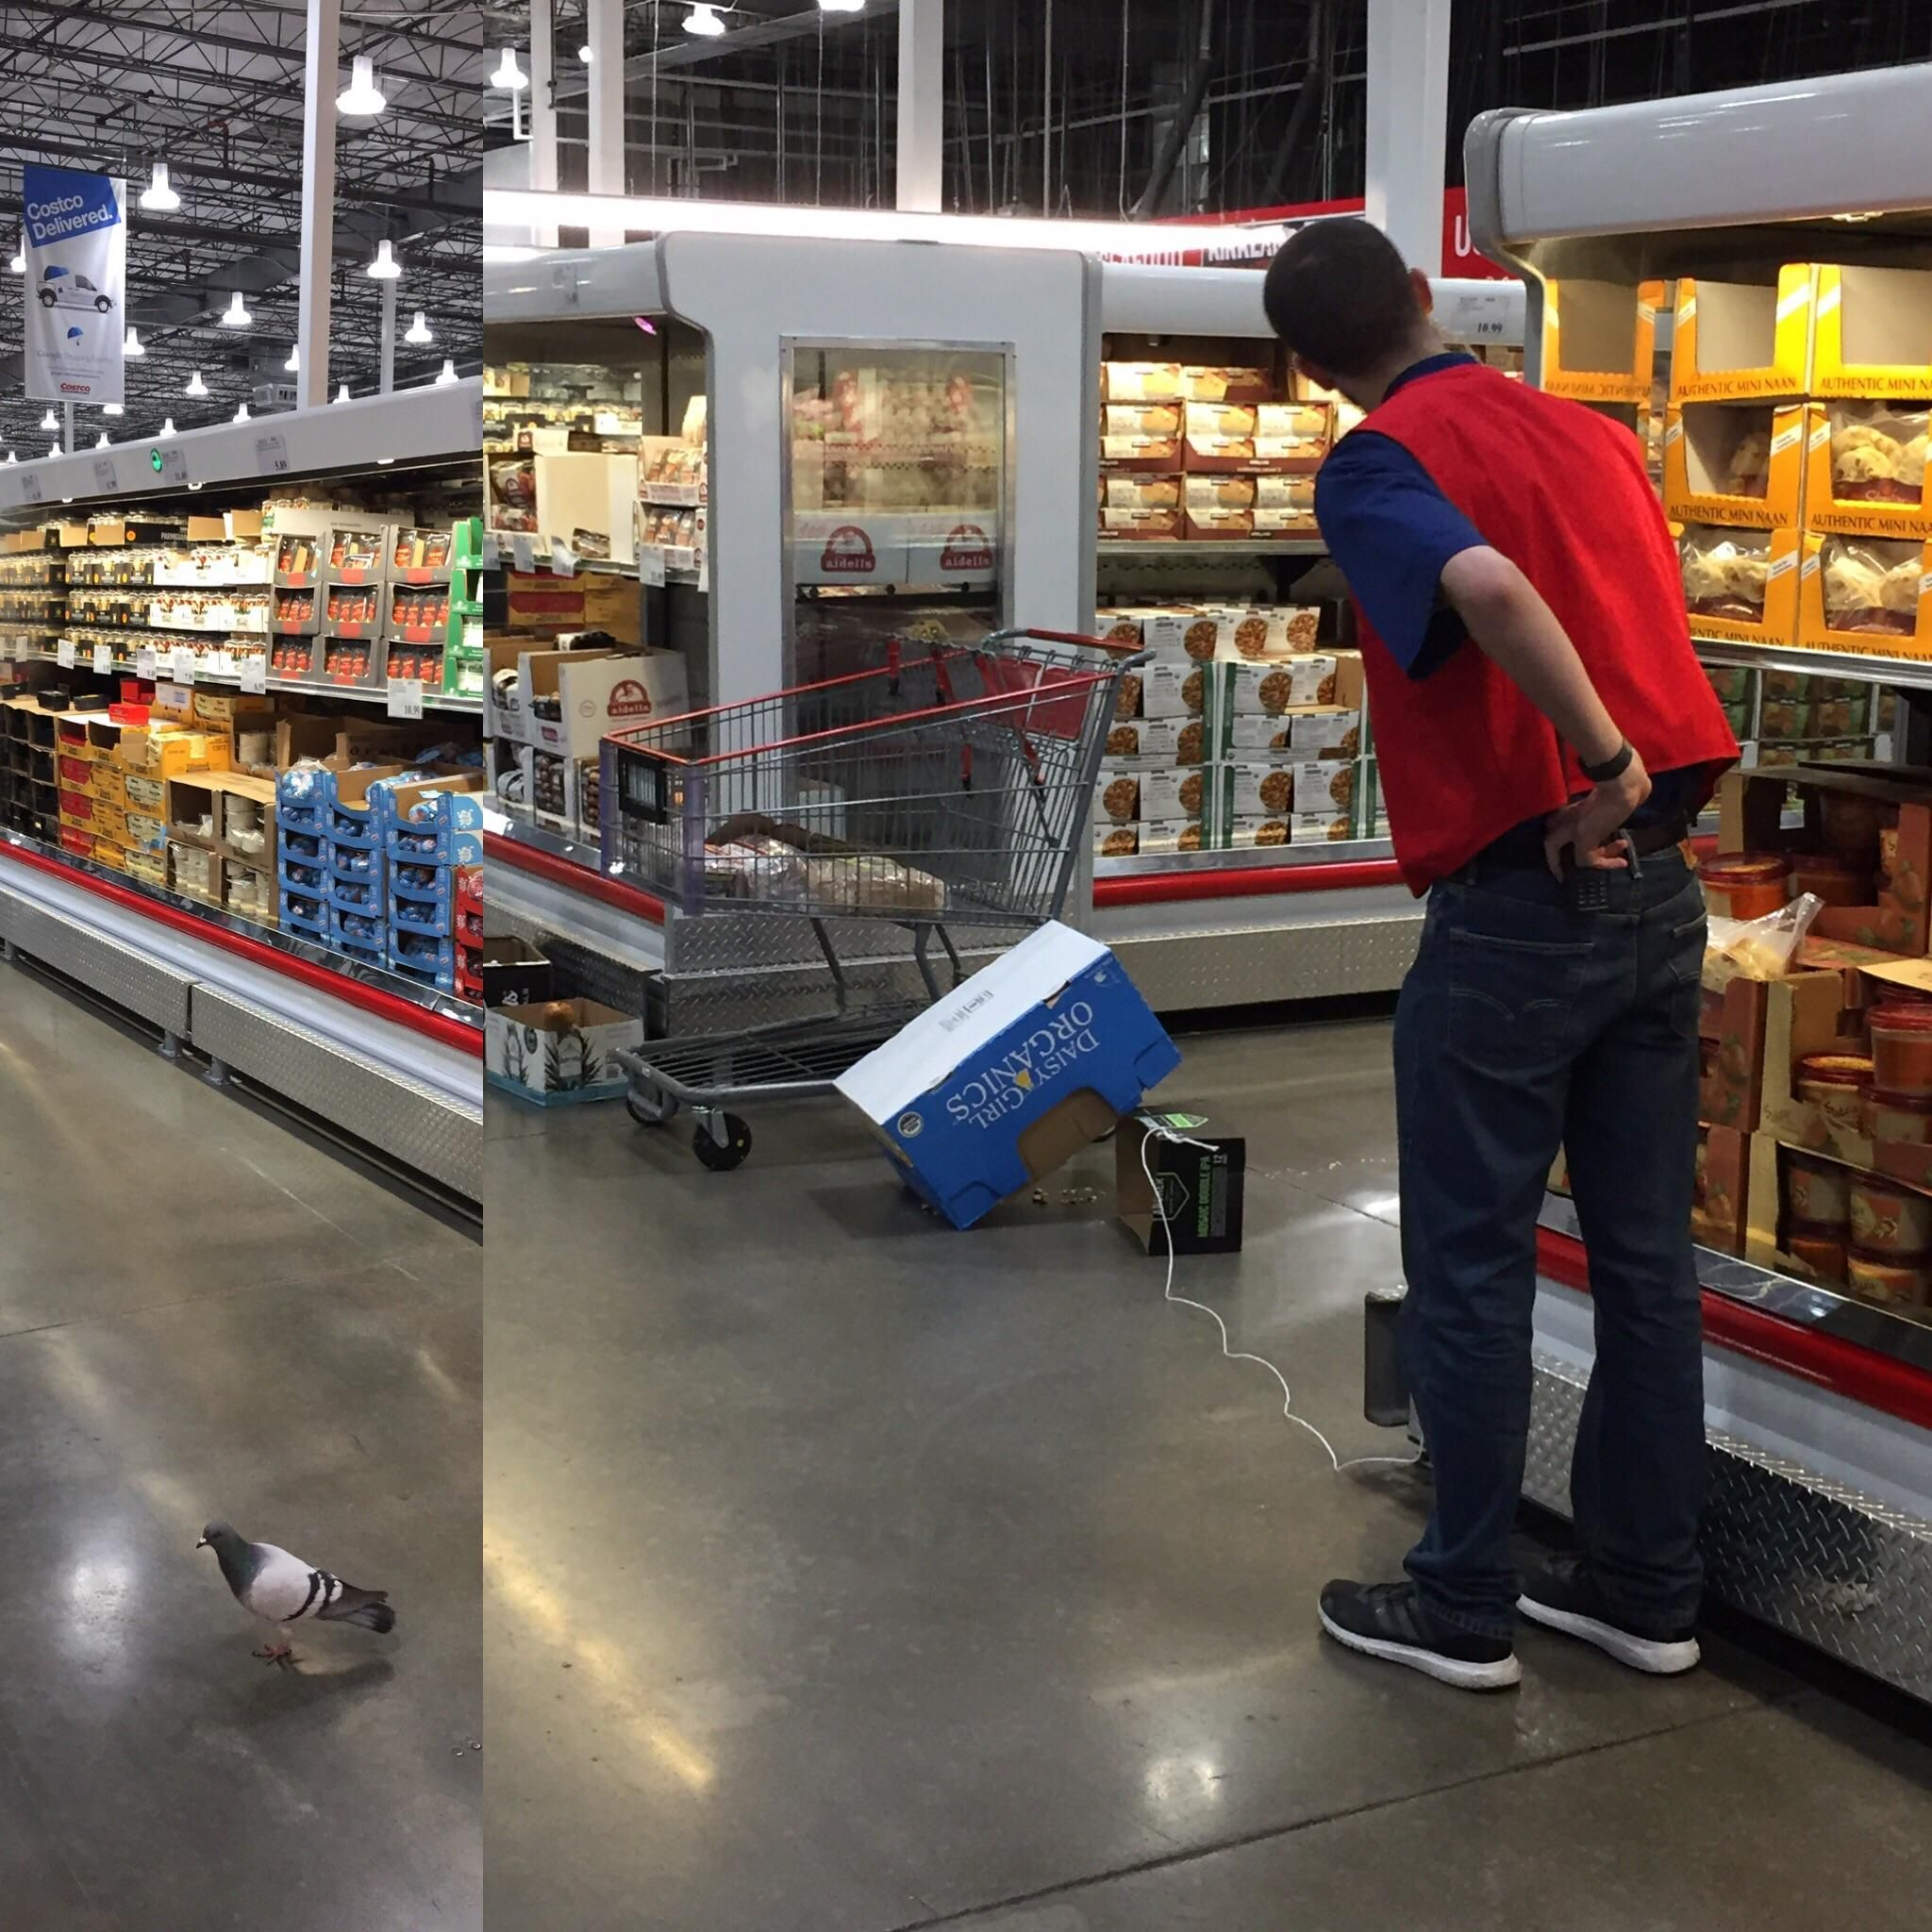 Nothing to see here just a Costco employee silently